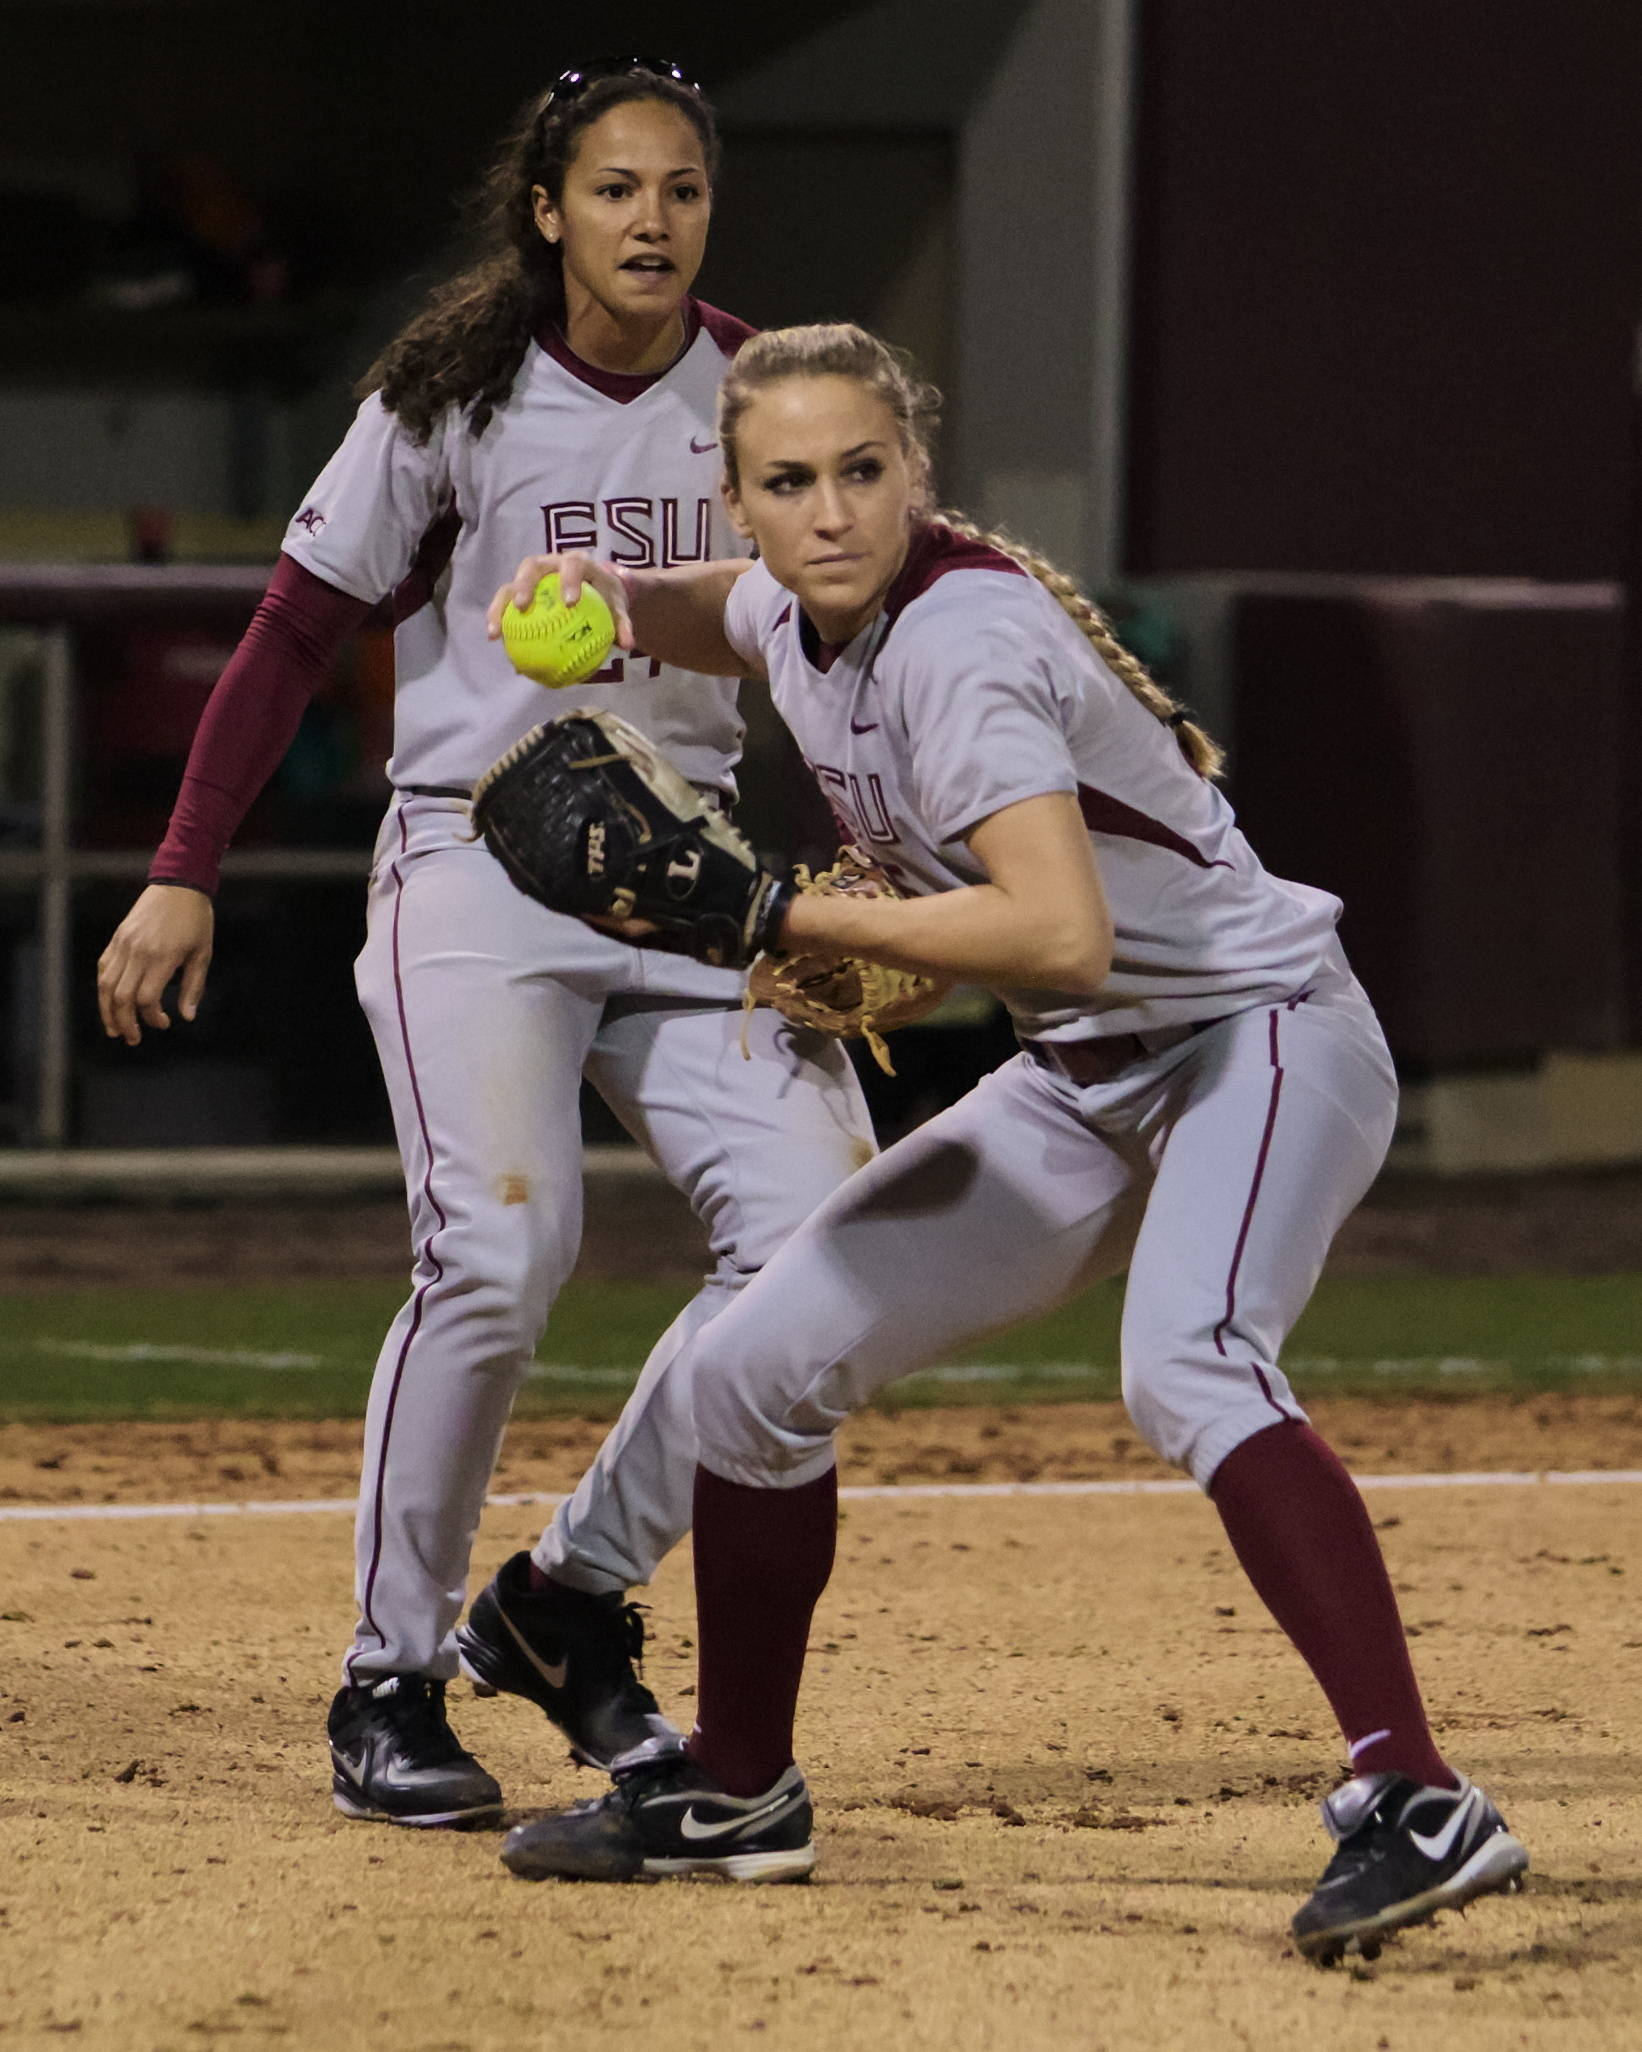 Monica Perry (55) fielding a bunt, FSU vs FAMU, 02/08/13. (Photo by Steve Musco)